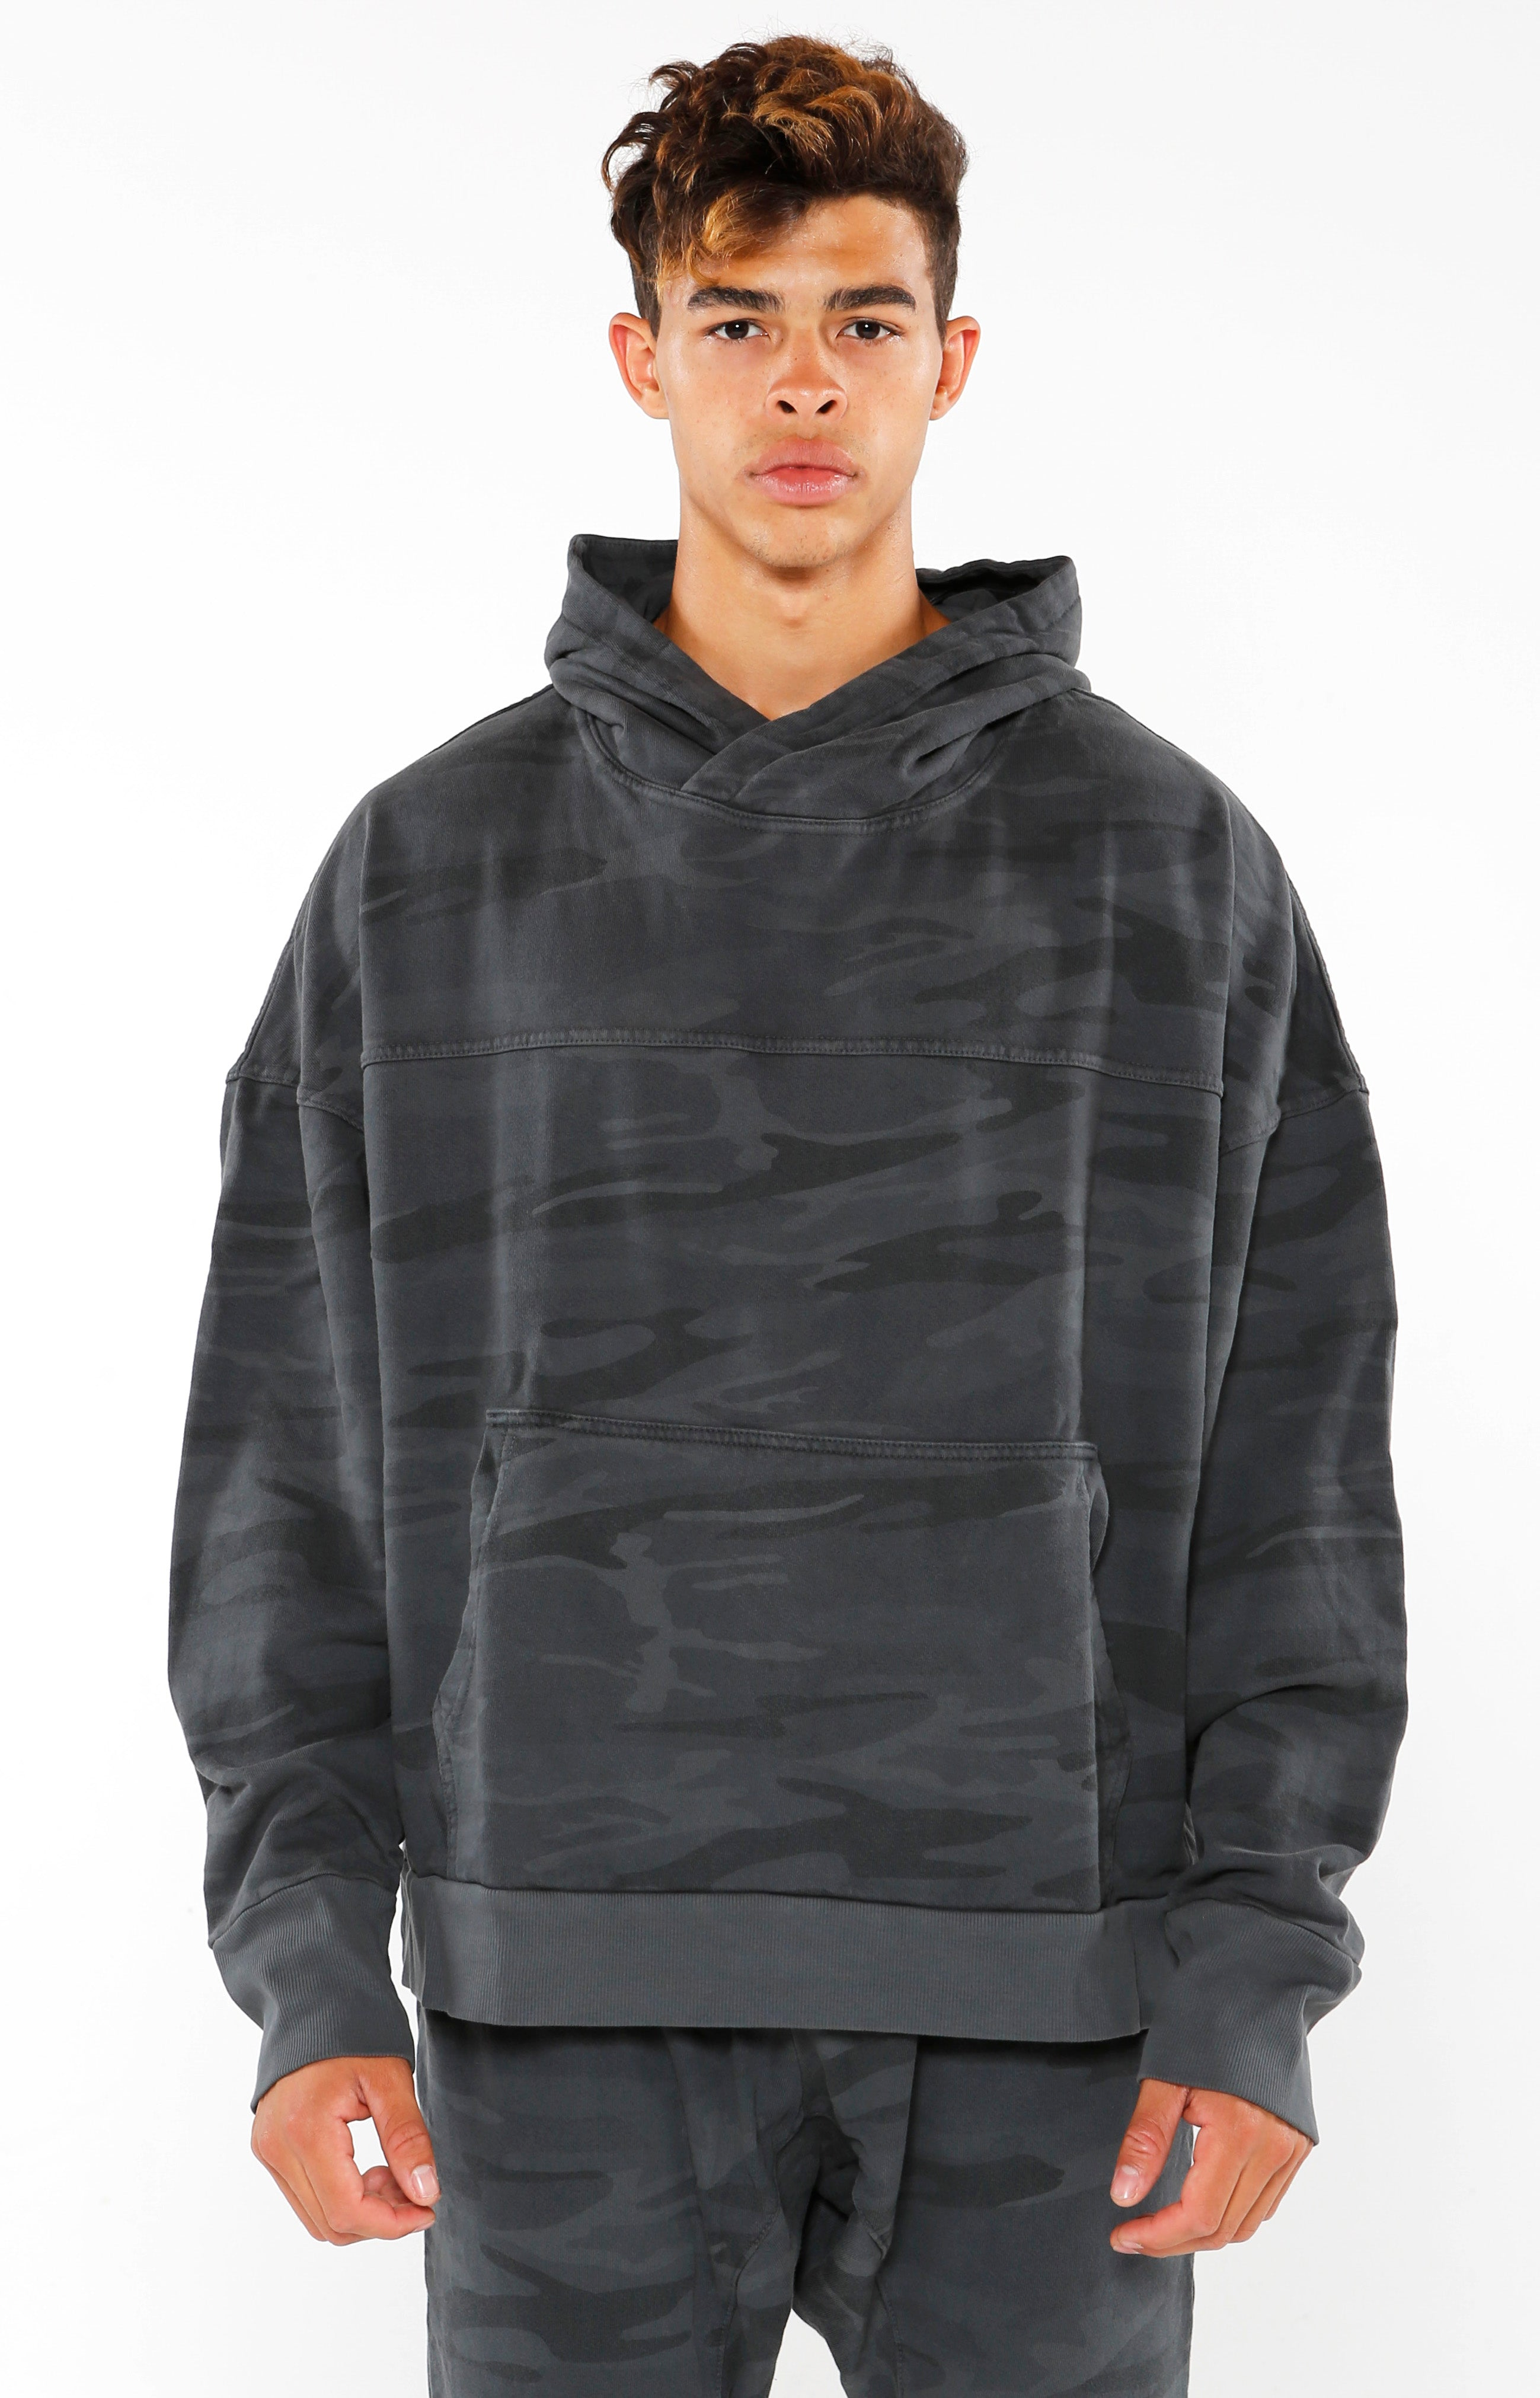 LIFE SENTENCE Tracksuit - Charcoal